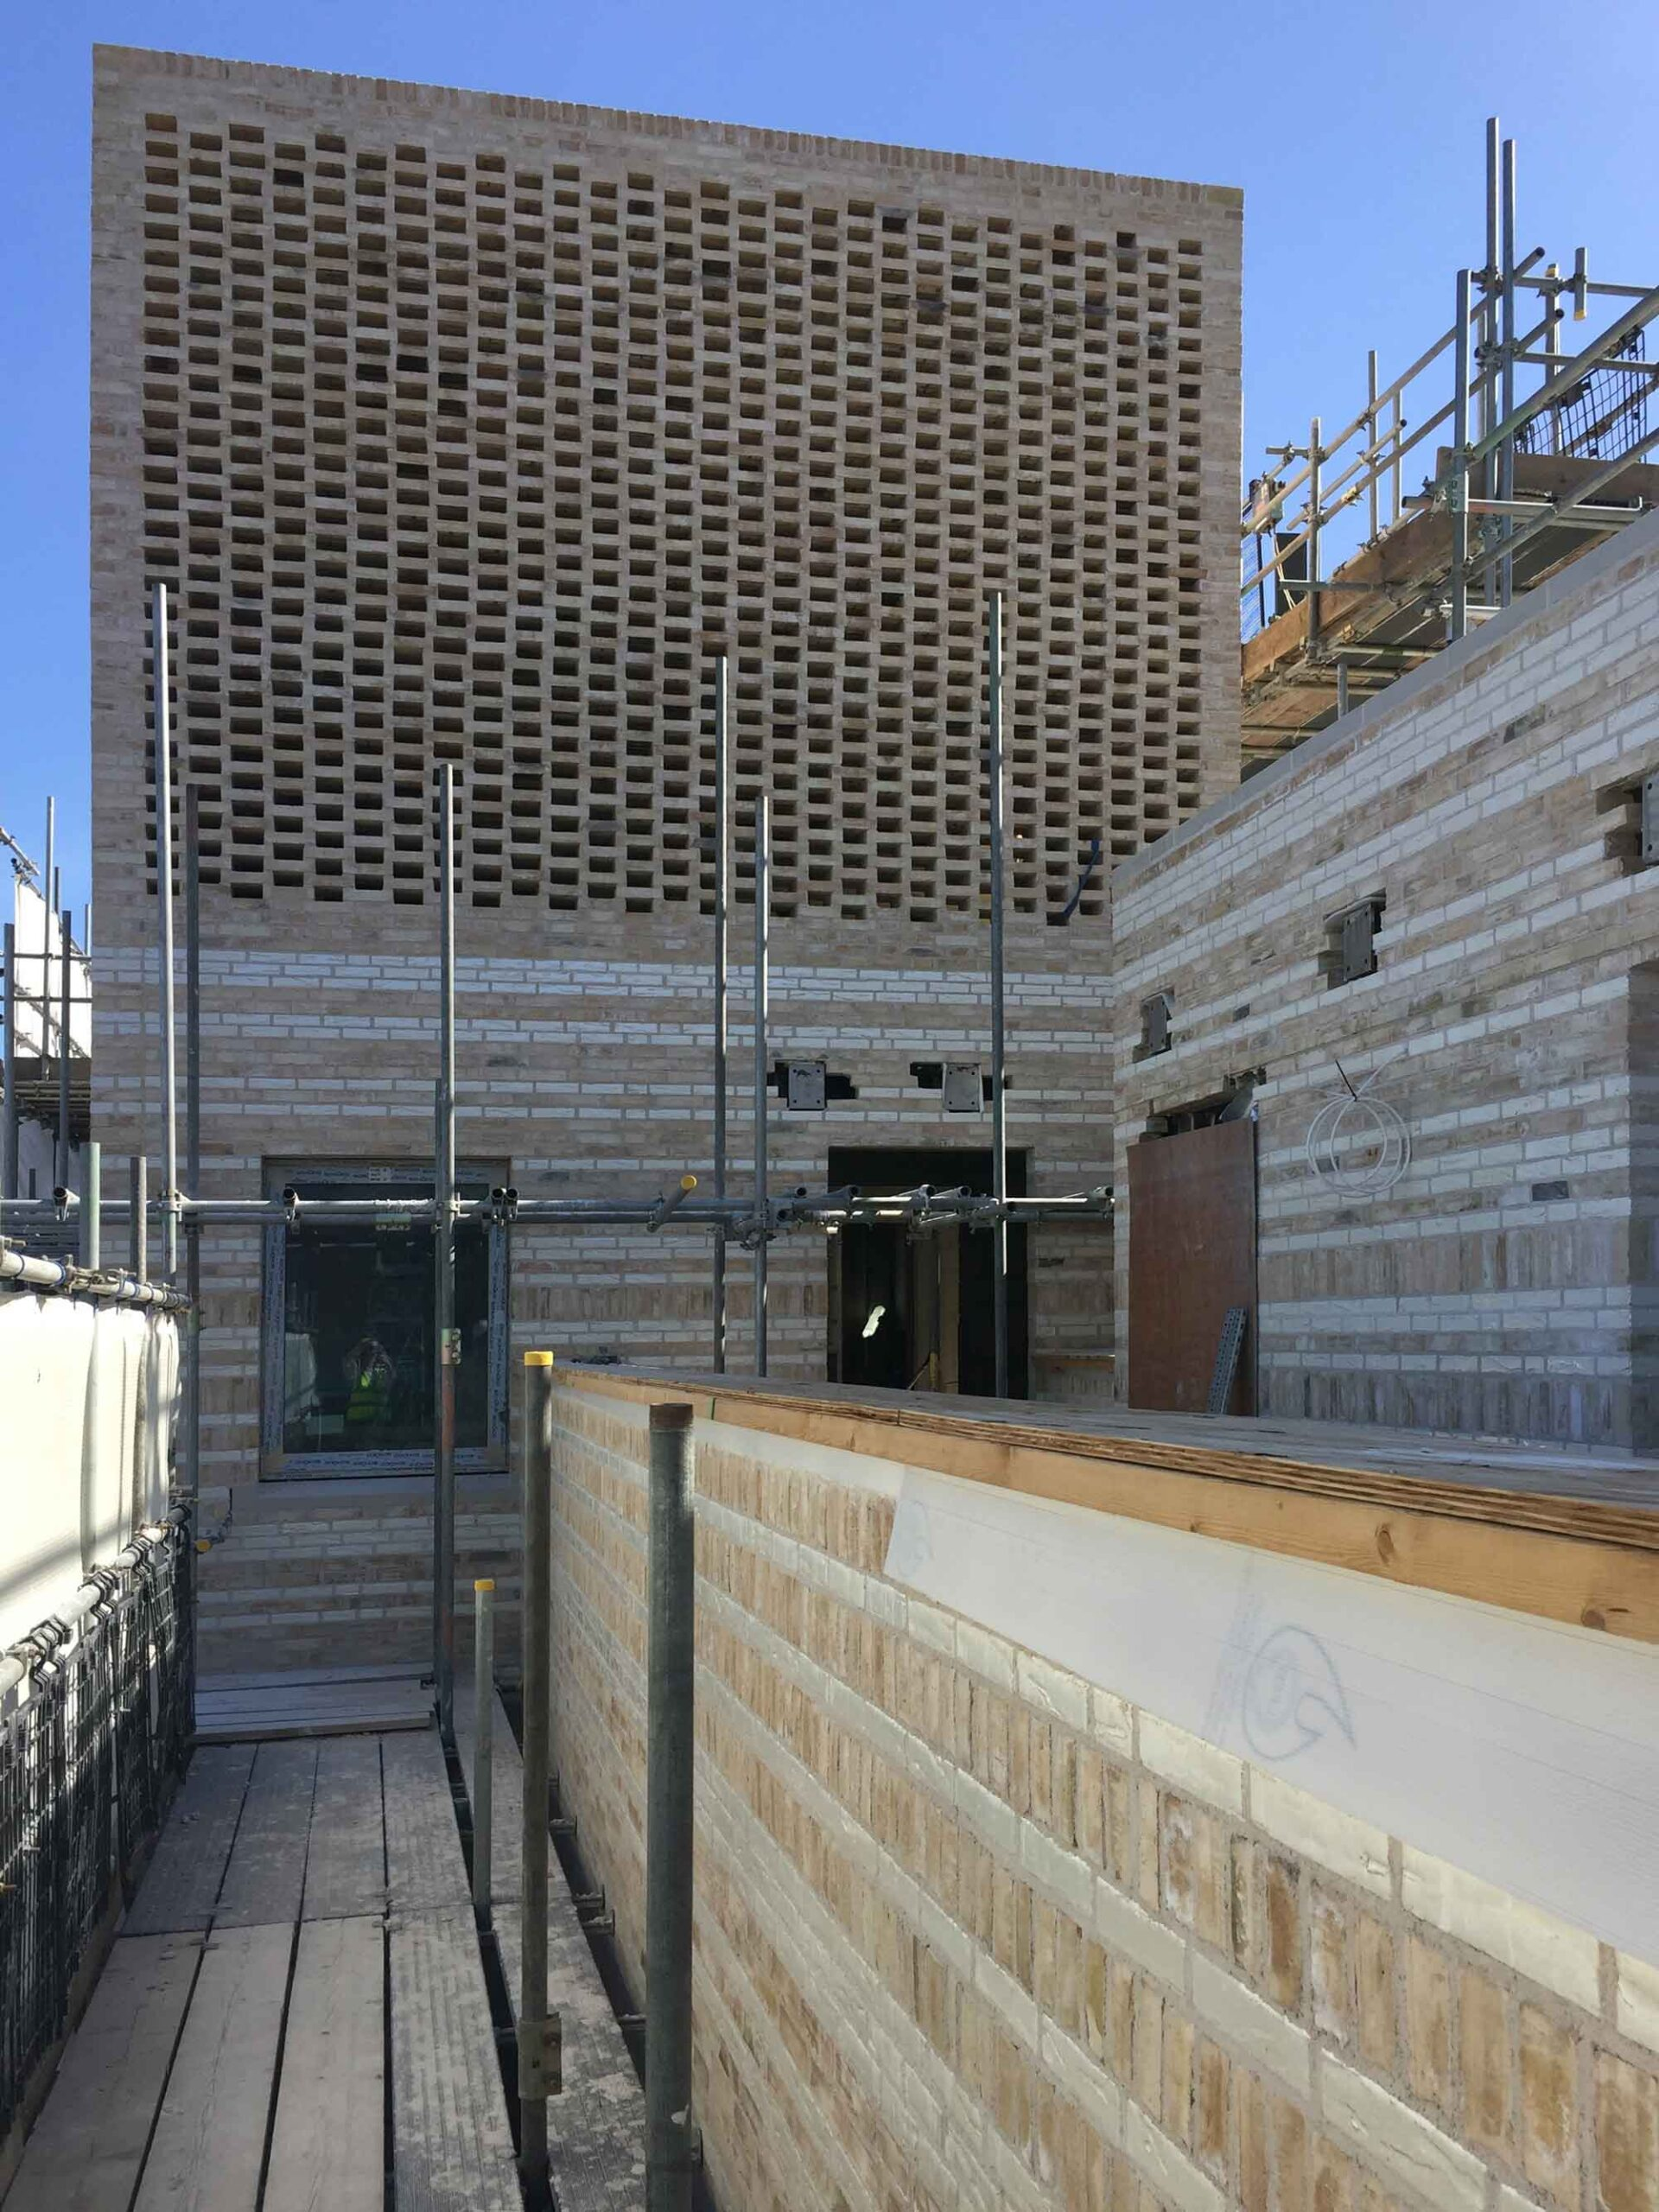 westminster-fire-station-openstudio-architects-perforated-brick-facade-plant